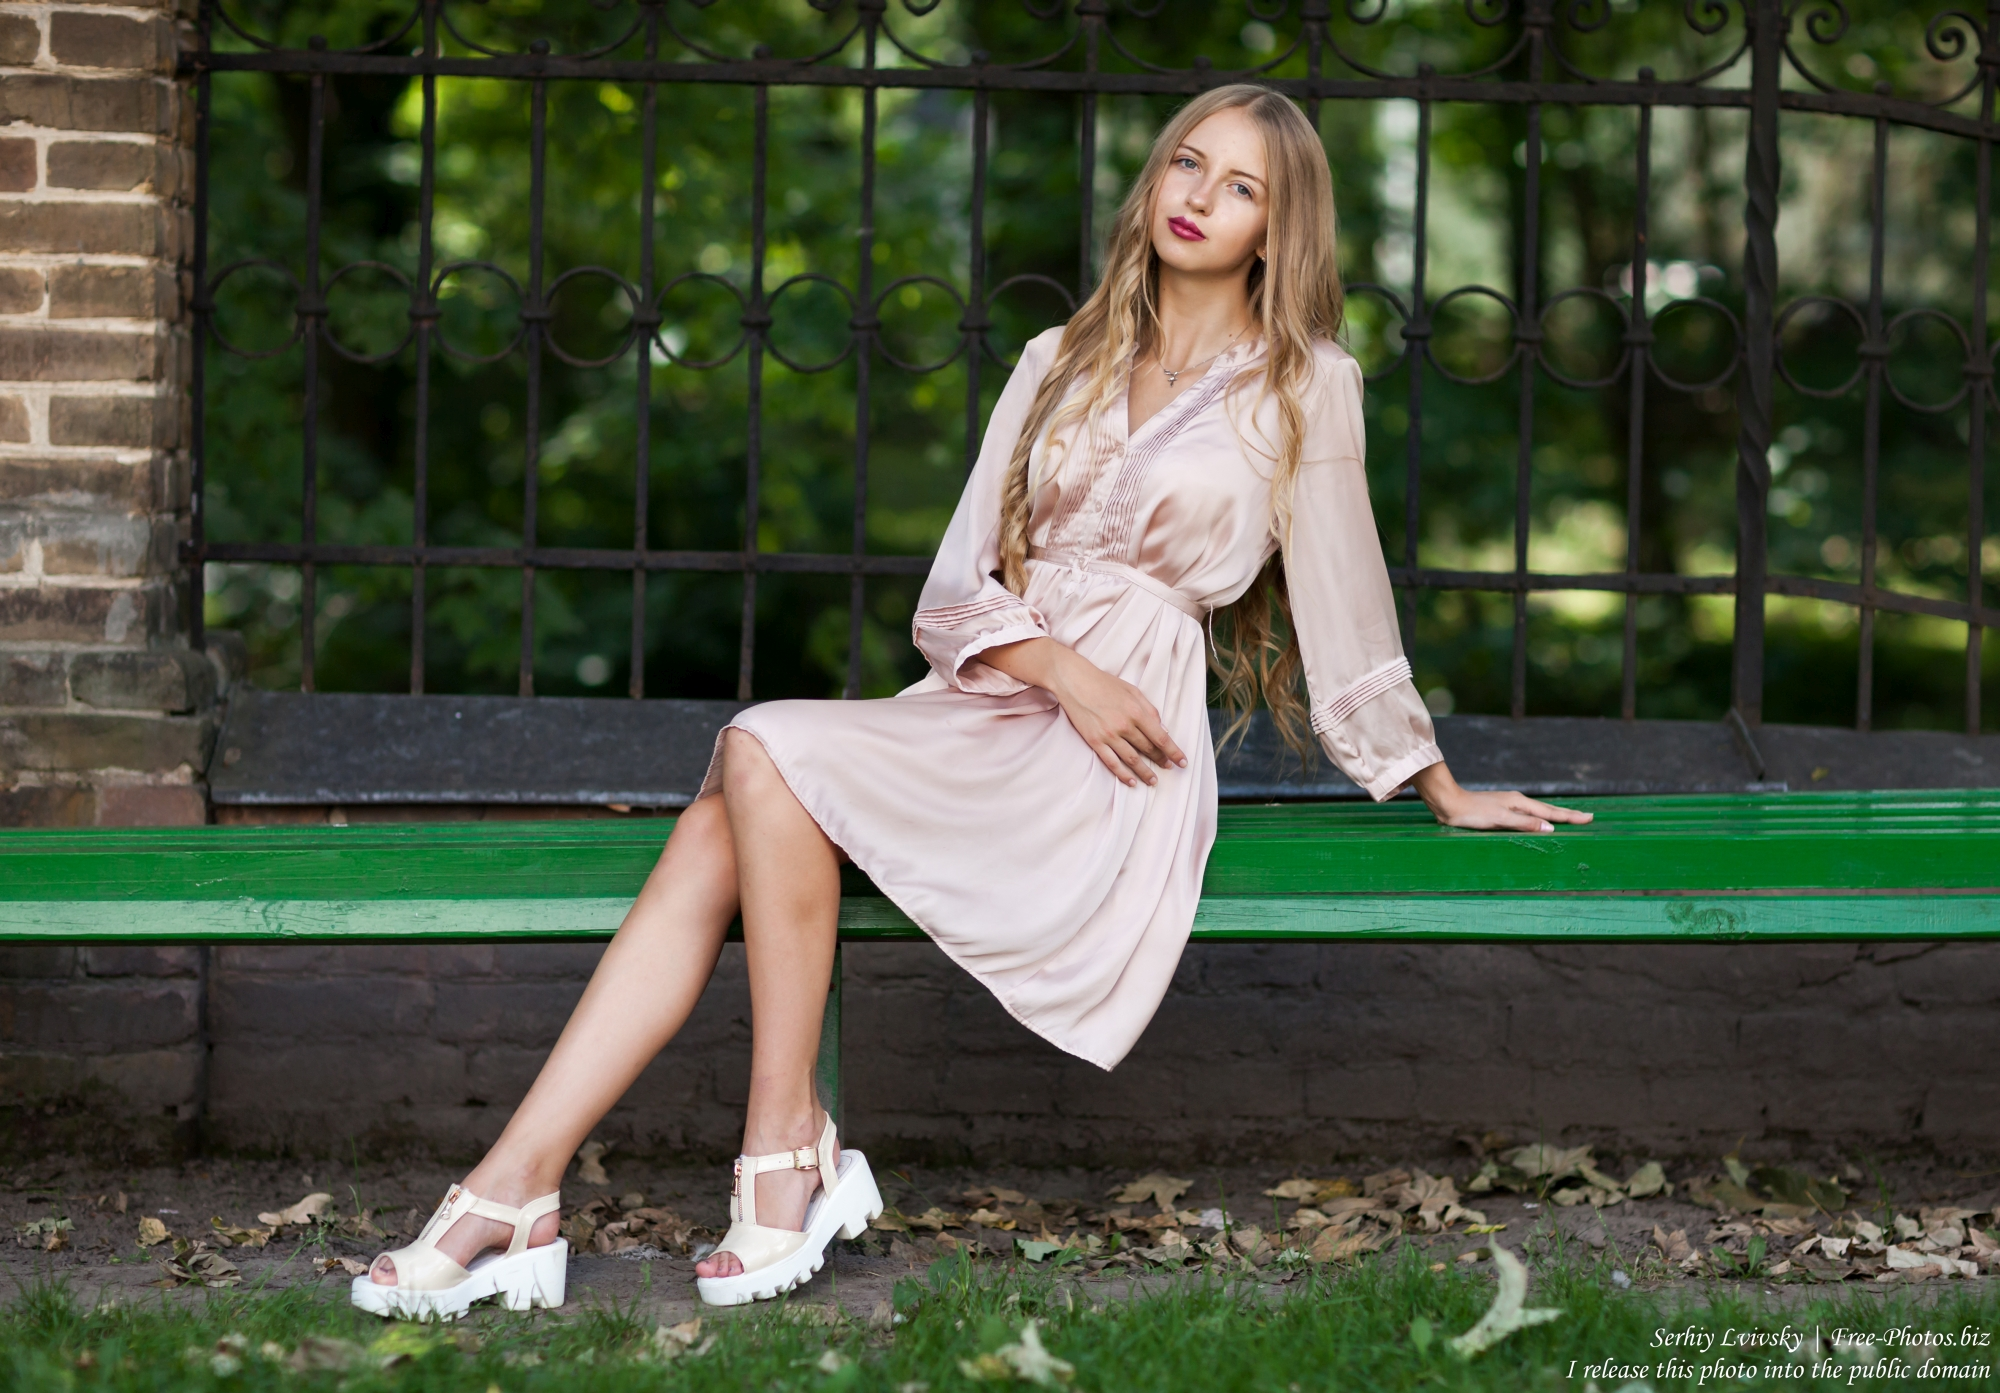 ania_a_14-year-old_natural_blonde_girl_photographed_by_serhiy_lvivsky_in_august_2017_32